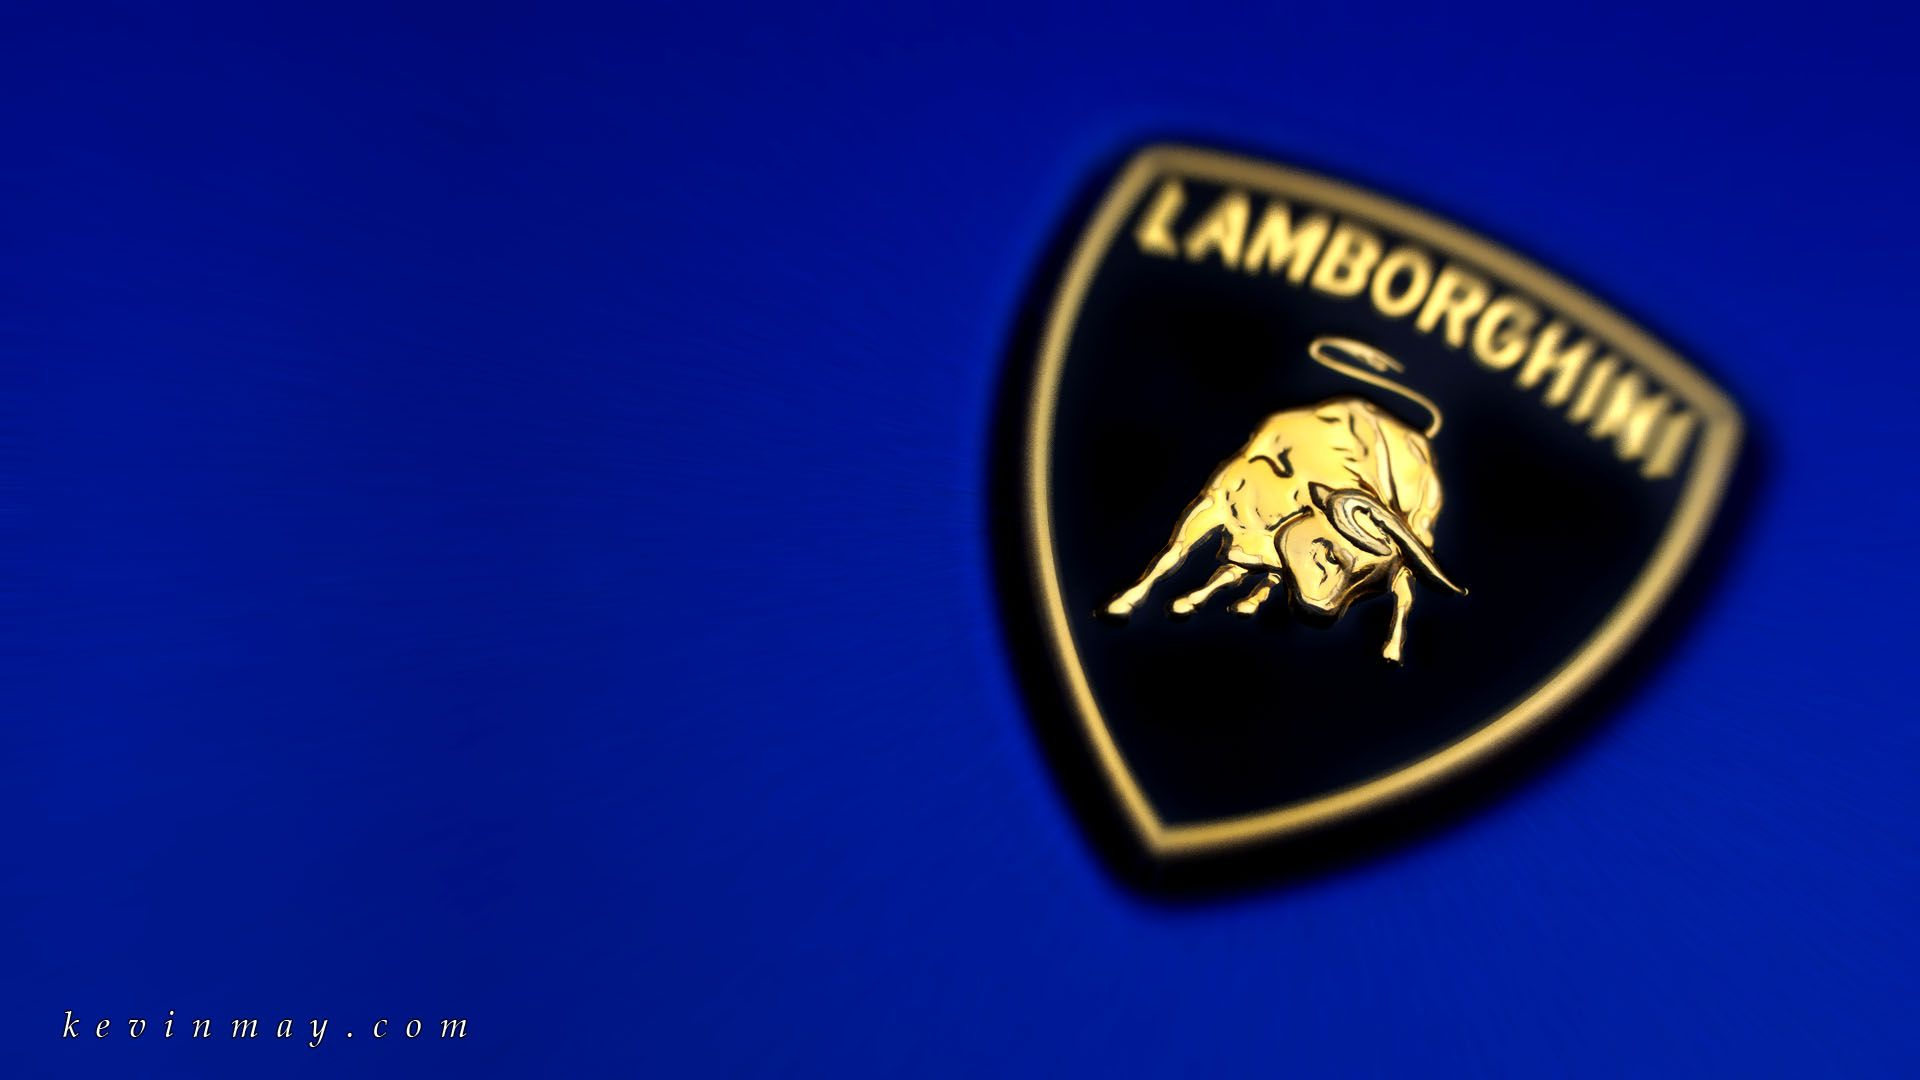 Lamborghini Logo Wallpaper Lamborghini Logo Wallpaper For Iphone